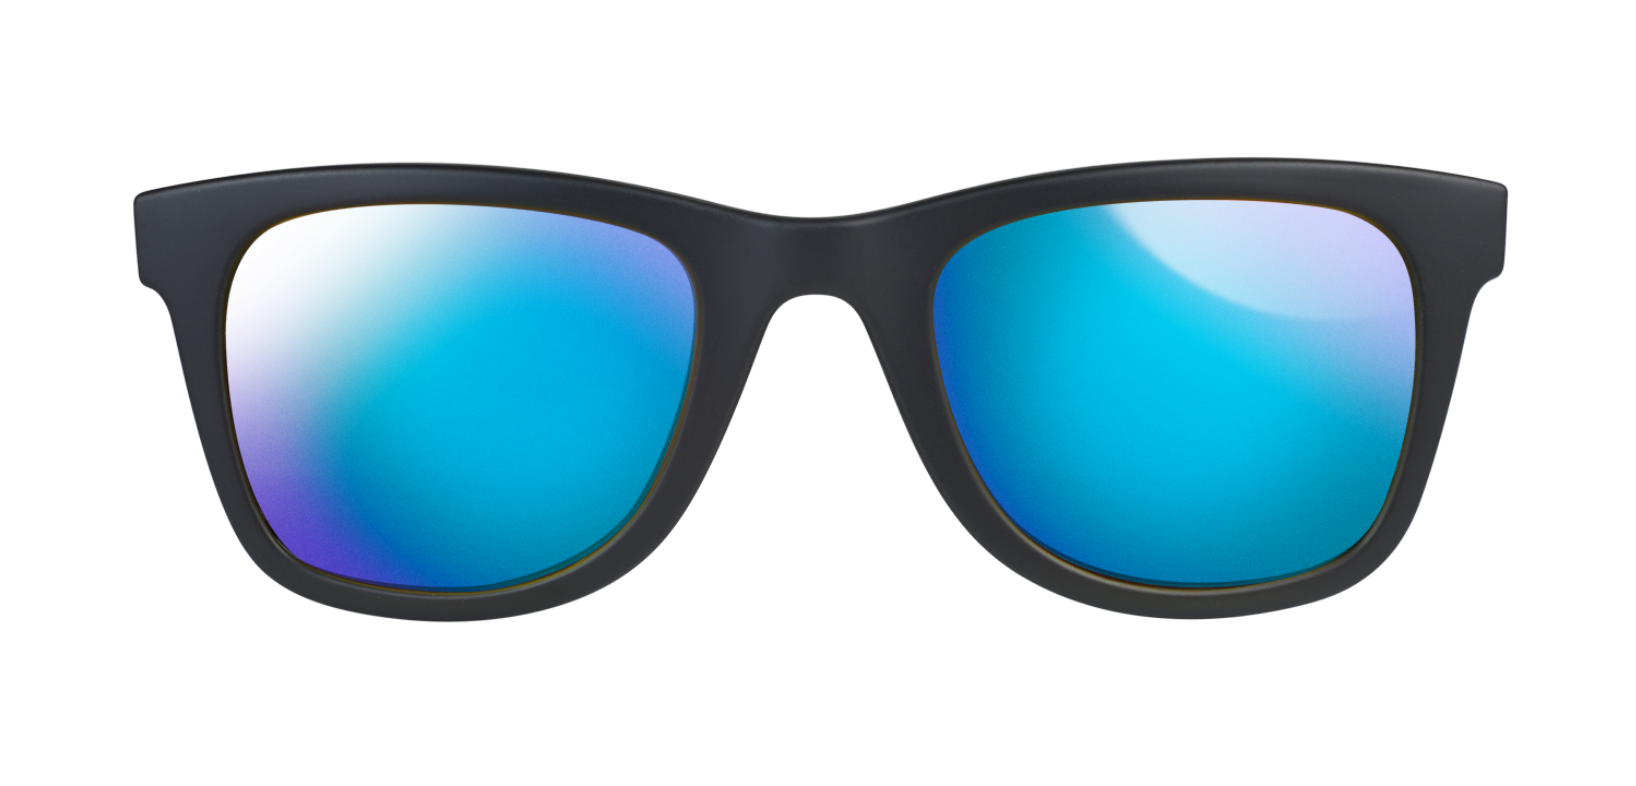 Transparent Sunglasses Png (89+ images in Collection) Page 1.